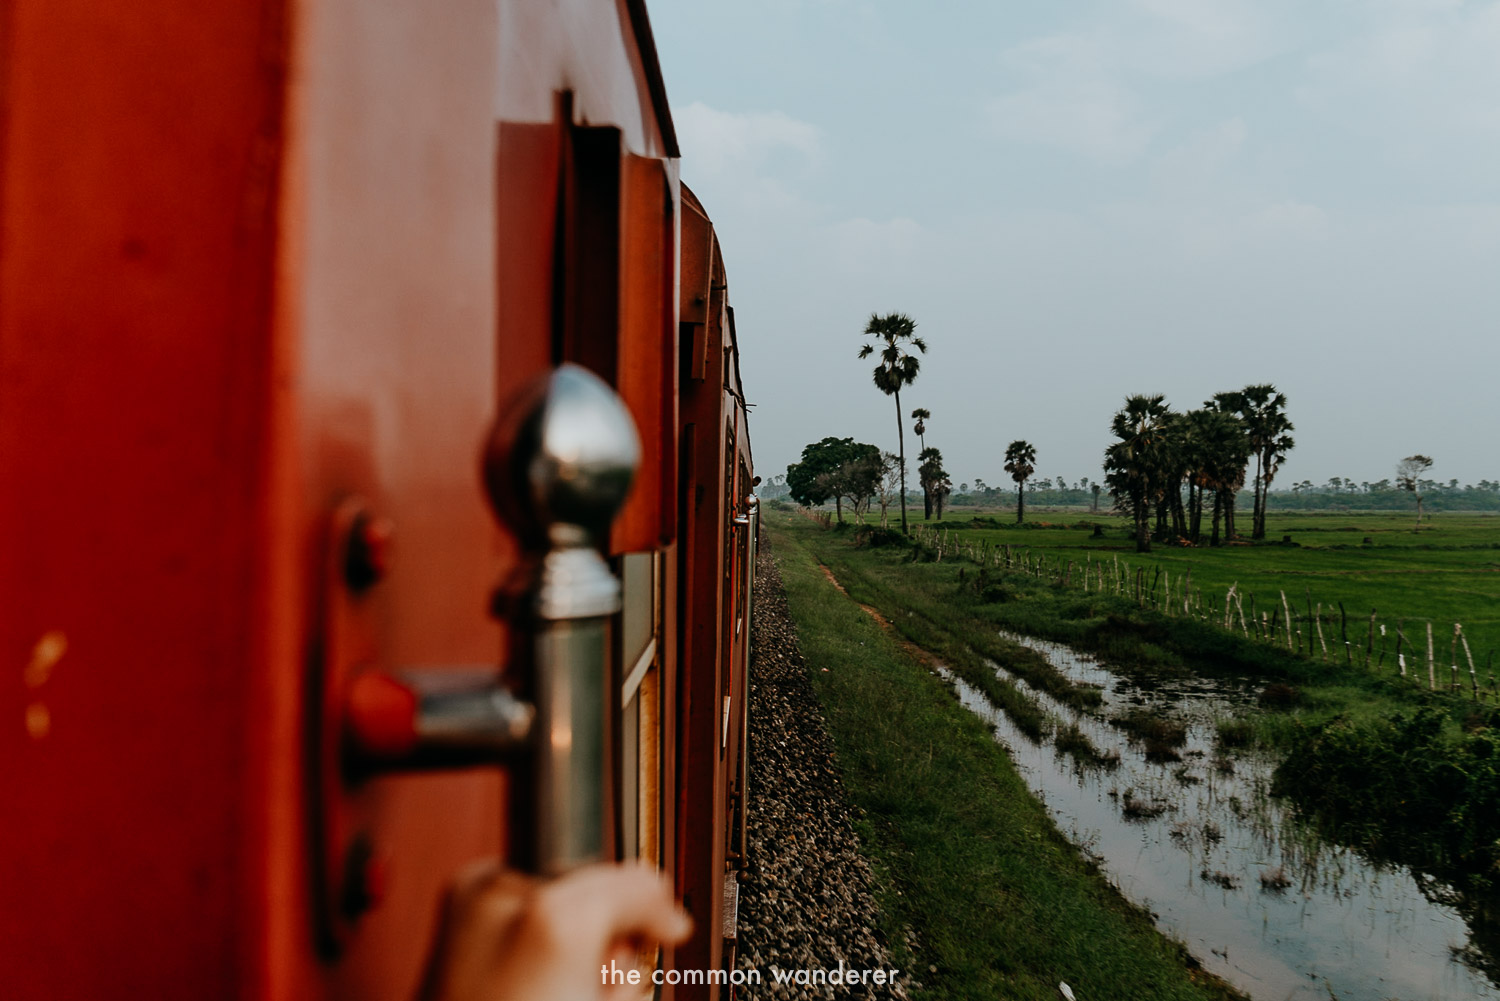 Looking out of the Jaffna train